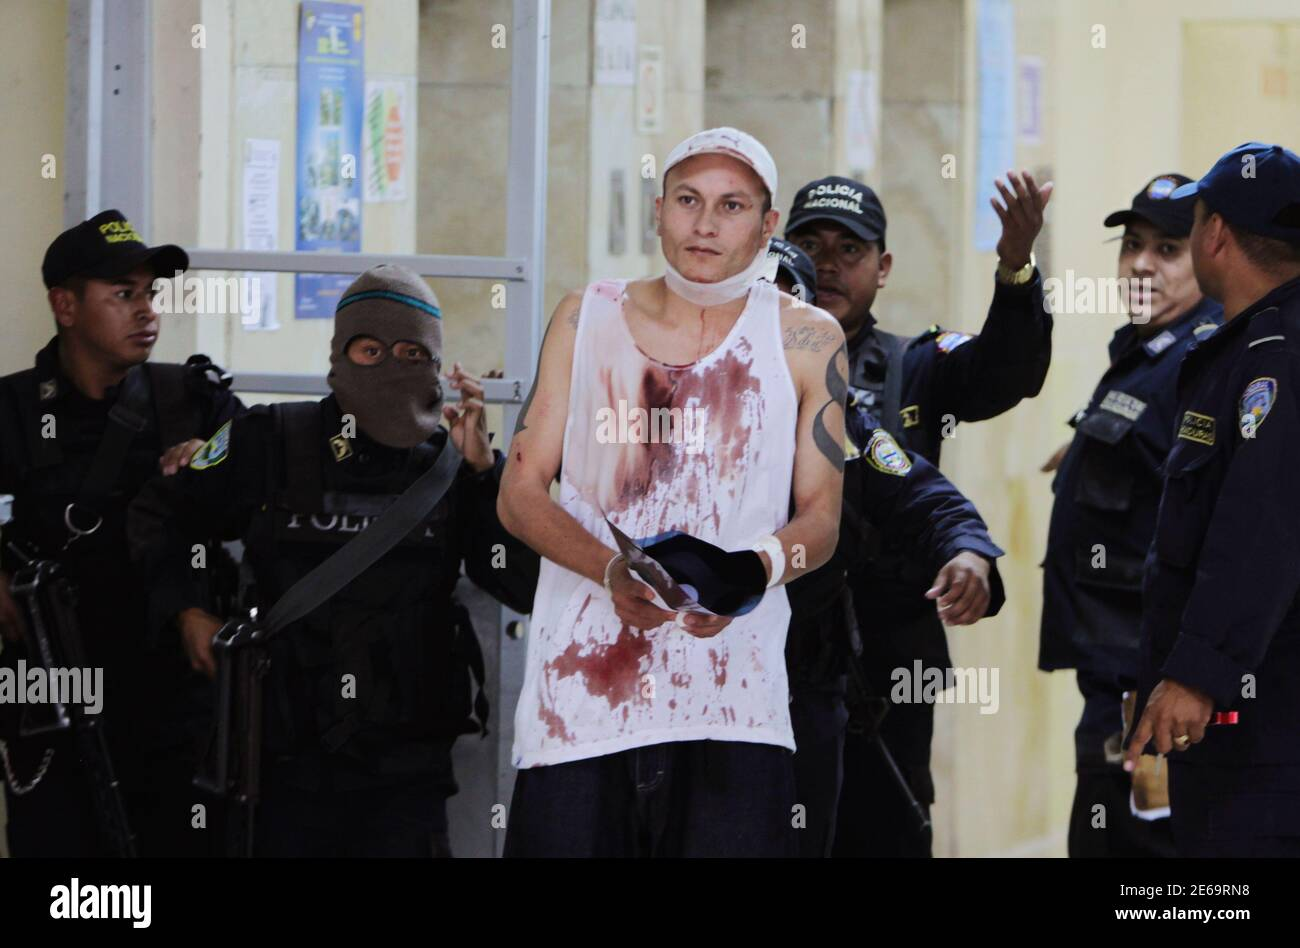 An injured gang member of the Mara 18 (M-18) is escorted by policemen after being checked by doctors at a hospital in Tegucigalpa August 3, 2013. Three gang members were killed and five more injured after members of the Mara 18 (M-18) clashed with members of rival gang Mara Salvatrucha (MS-13) at the maximum security jail of Tamara early Saturday, local media reported. REUTERS/Jorge Cabrera (HONDURAS - Tags: CIVIL UNREST CRIME LAW) Stock Photo